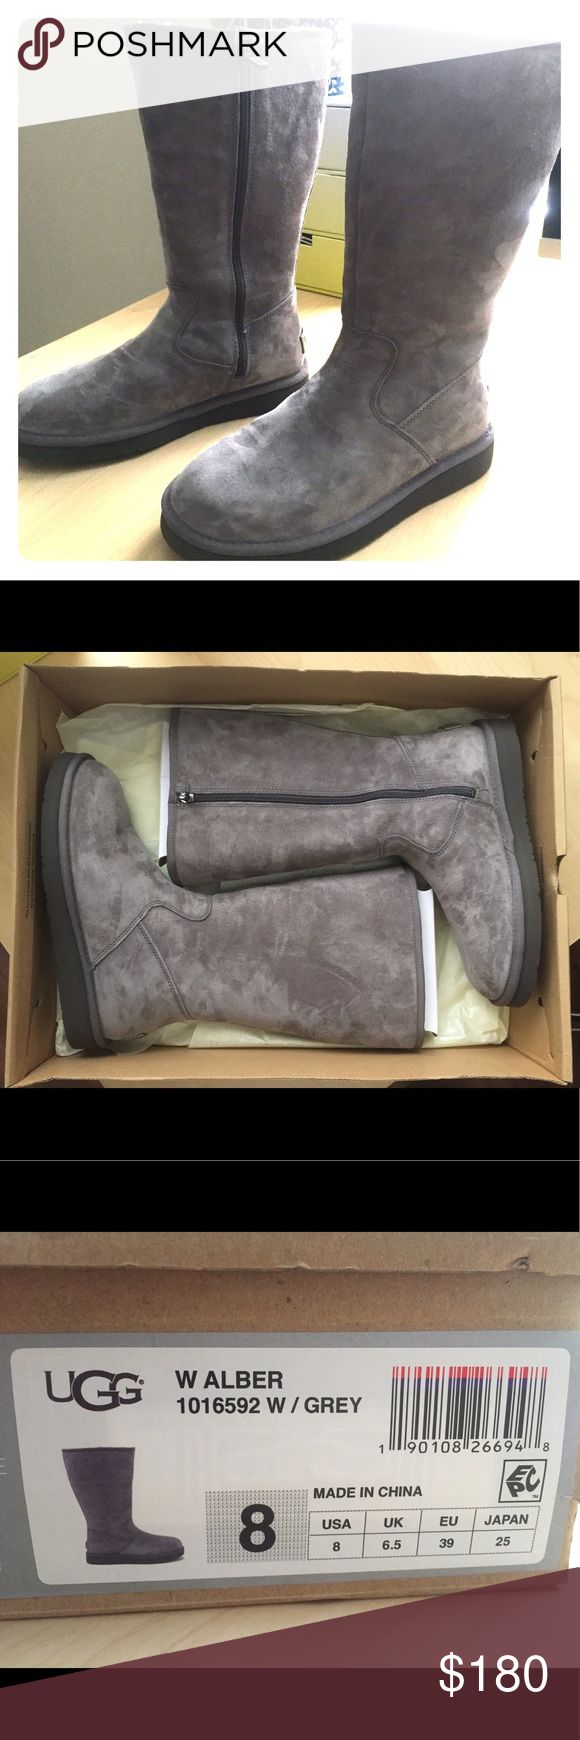 Ugg Alber boots 8 Grey These a brand new Ugg boots! They zipper closed on the inside of the calf and they have rubber souls, as opposed to just the foam bottoms like original uggs. These are perfect for cold weather and much sturdier. UGG Shoes Winter & Rain Boots